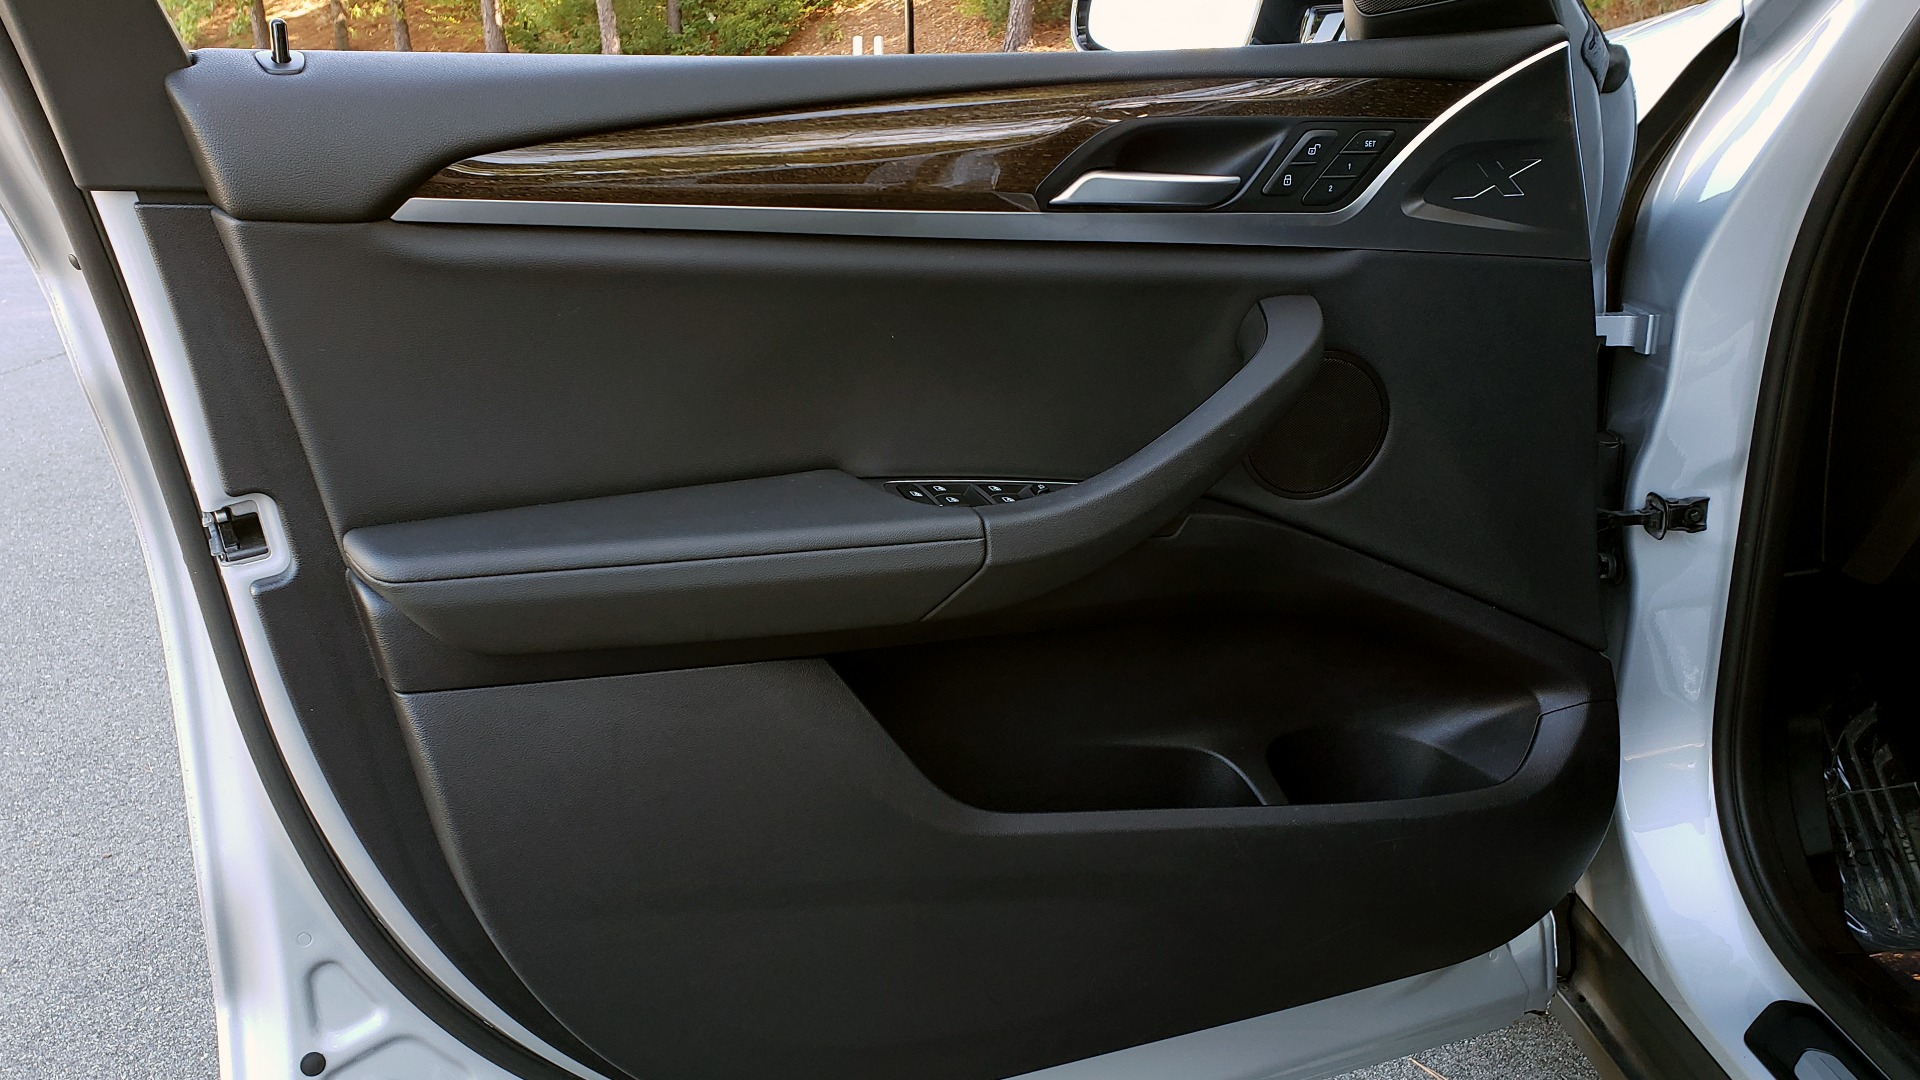 Used 2019 BMW X3 XDRIVE30I / DRVR ASST / PANO-ROOF / HTD STS / REARVIEW for sale $41,995 at Formula Imports in Charlotte NC 28227 85